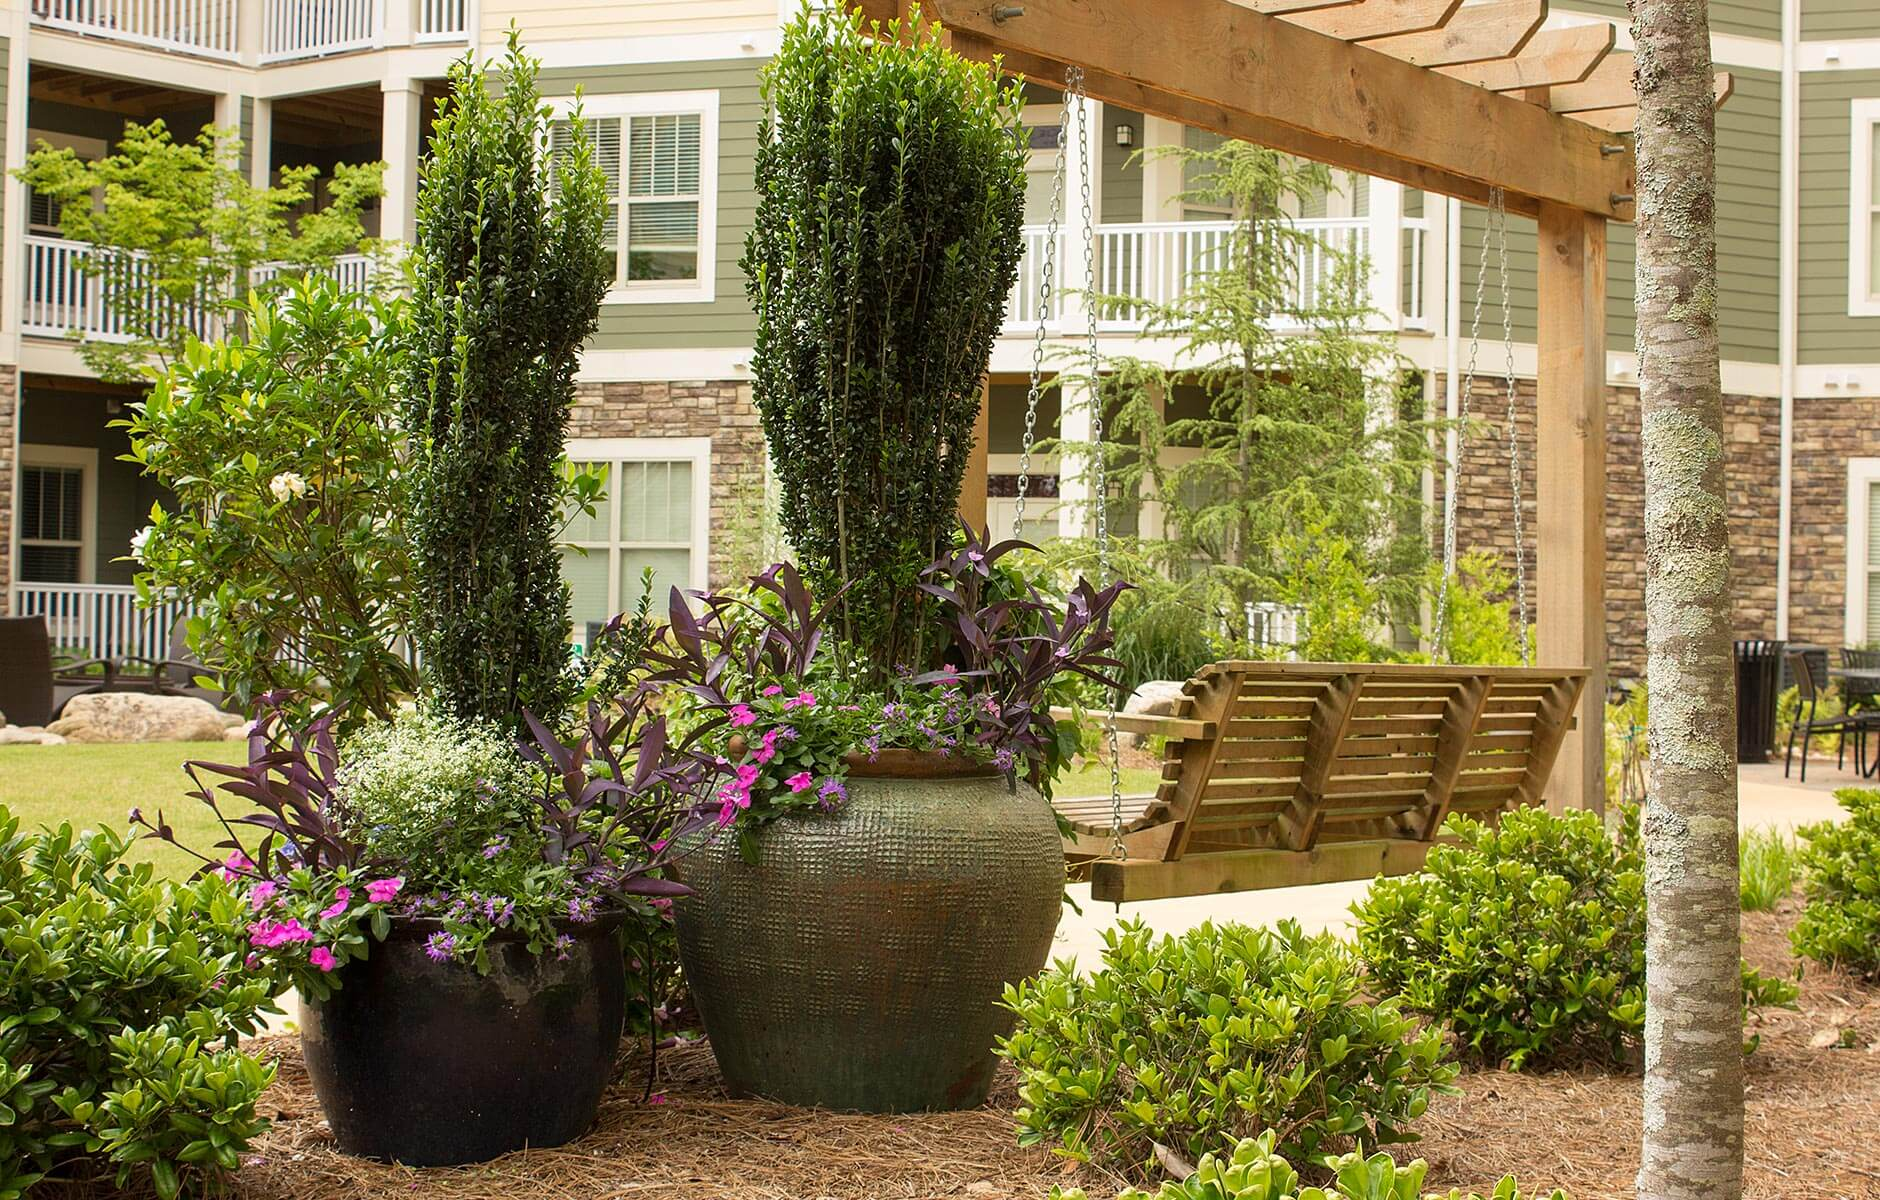 Landscaping enhanced with large flower pots full of spring colors